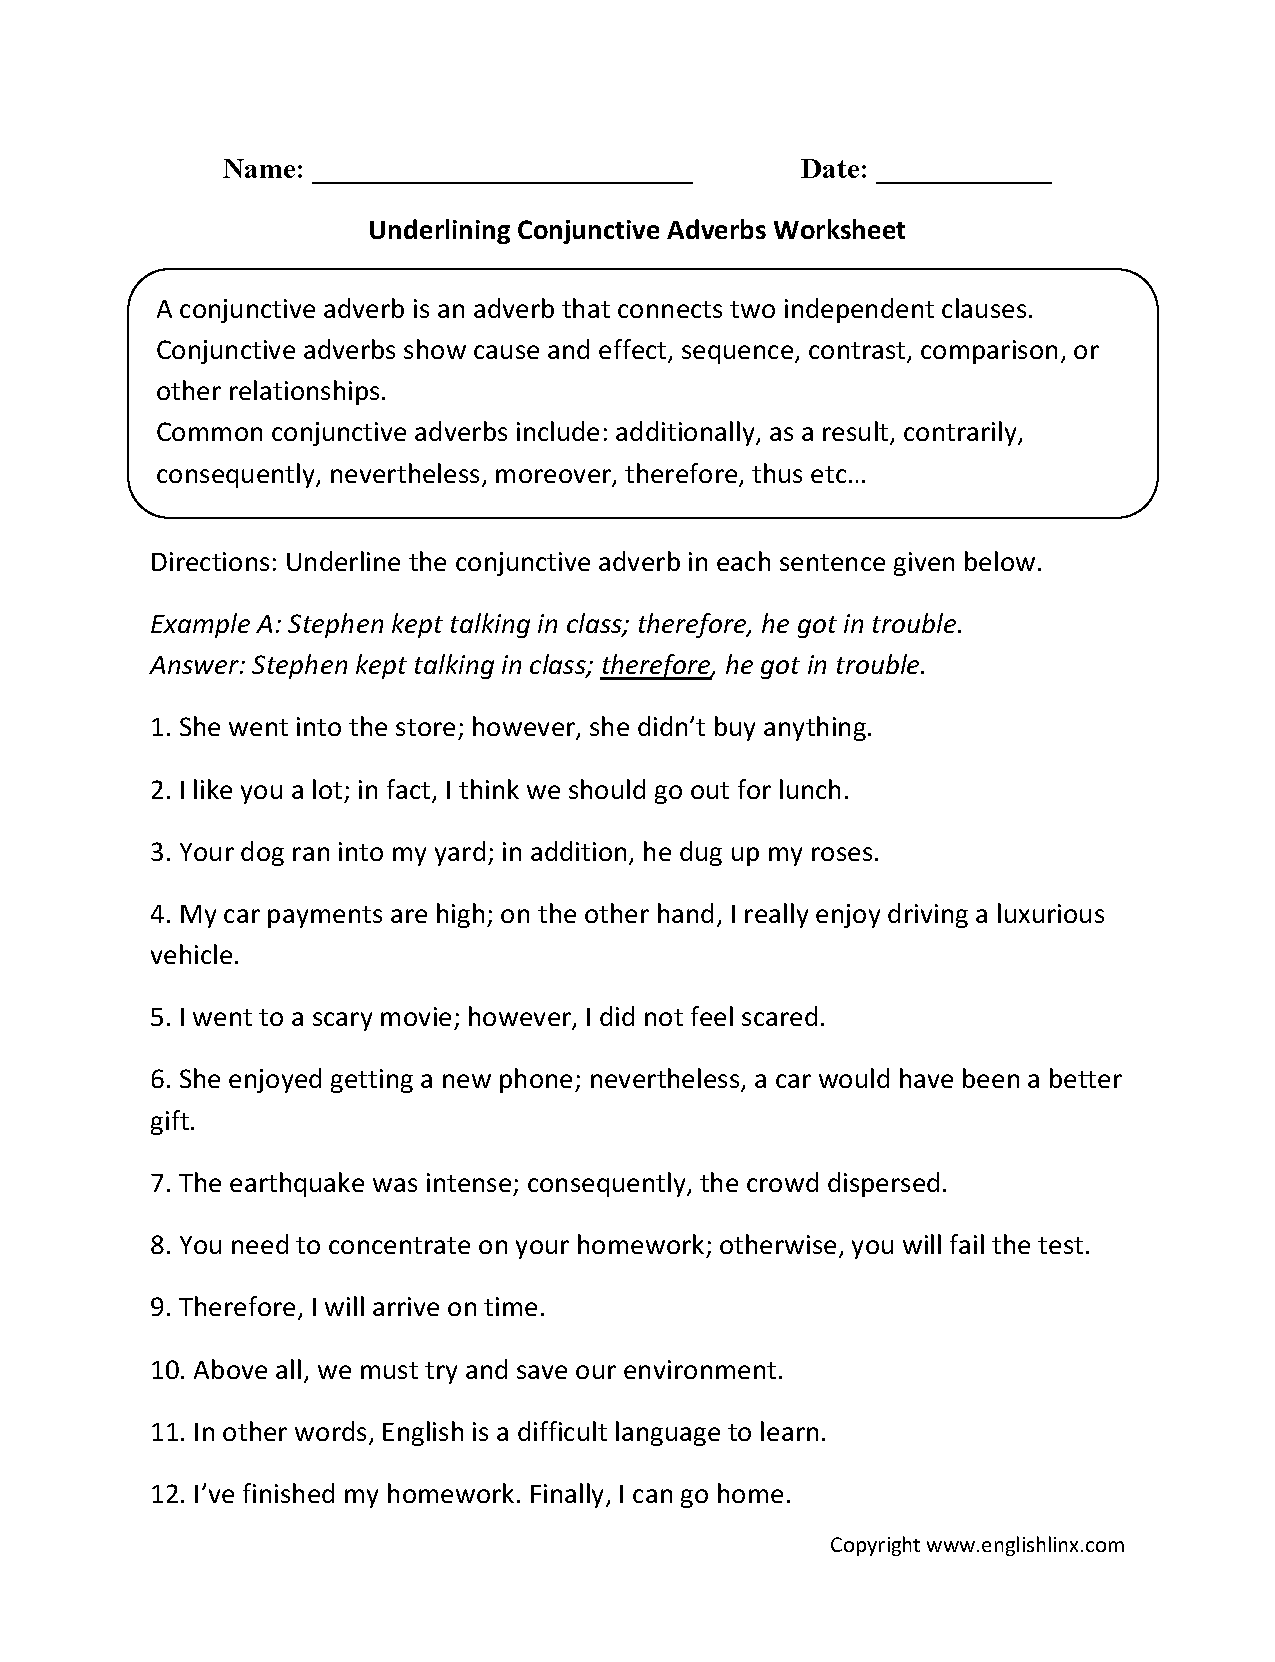 Weirdmailus  Unique Englishlinxcom  Conjunctions Worksheets With Licious Worksheet With Cool Printable Reading Worksheets For Th Grade Also Forming Adjectives From Nouns Worksheets In Addition Teaching Prepositions Worksheet And Maths Worksheets For Year  Printable As Well As Fire Drill Worksheets Additionally Abc Worksheets To Print From Englishlinxcom With Weirdmailus  Licious Englishlinxcom  Conjunctions Worksheets With Cool Worksheet And Unique Printable Reading Worksheets For Th Grade Also Forming Adjectives From Nouns Worksheets In Addition Teaching Prepositions Worksheet From Englishlinxcom